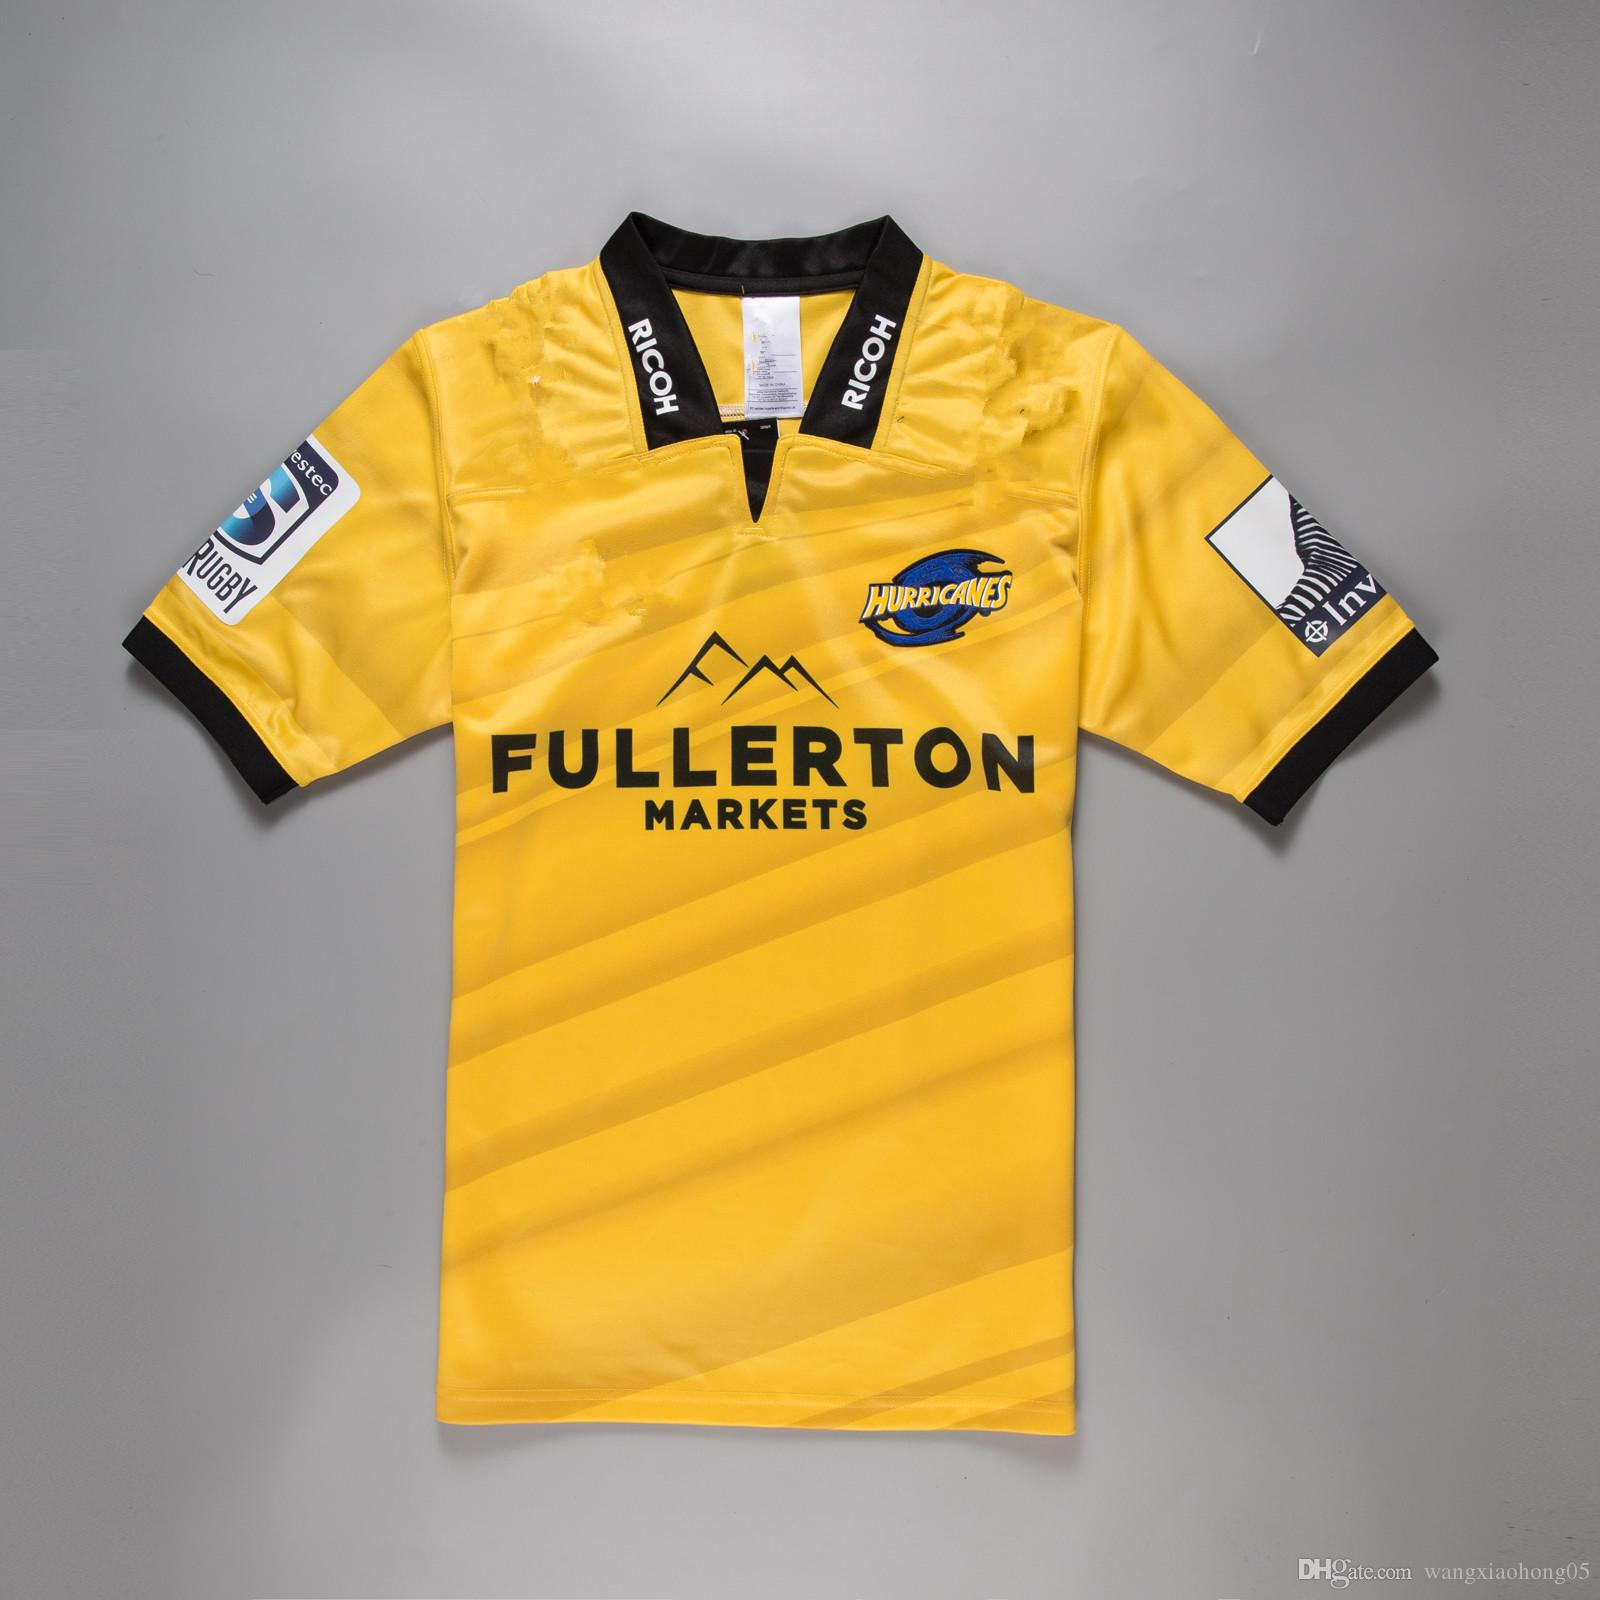 bf6b7c7a438 2019 2018 Hurricanes Super Rugby Home Jersey New Zealand Super Rugby  Hurricanes 2017 Home Rugby Jerseys Euro Extra Large Size S 3XL 5XL From  Wangxiaohong05, ...